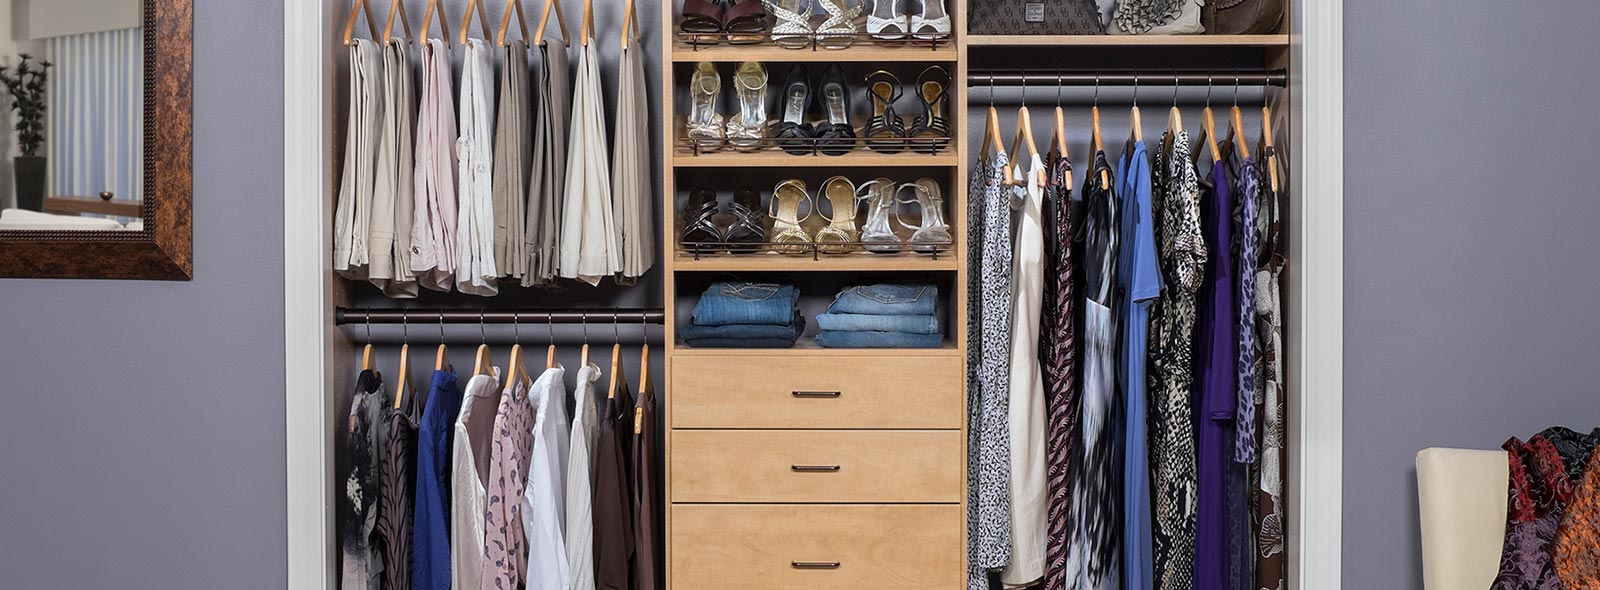 Marvelous Design Of The Small Closet Design With Young Brown Wooden Drawers Added With Grey Wall Ideas